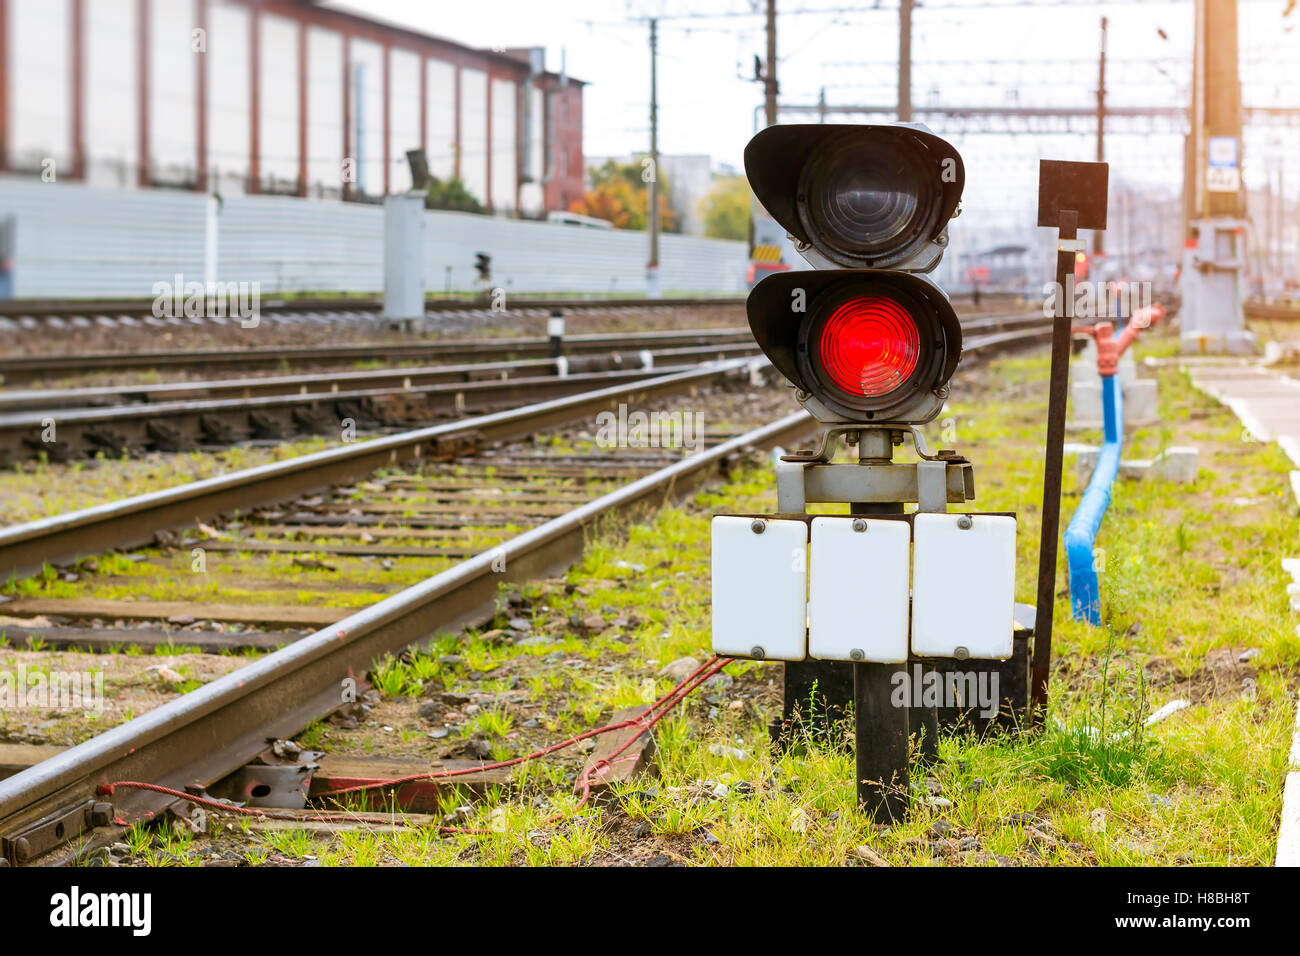 Railway semaphore prohibiting shines red. Technical railway depot. Transport infrastructure of Russian Railways, - Stock Image